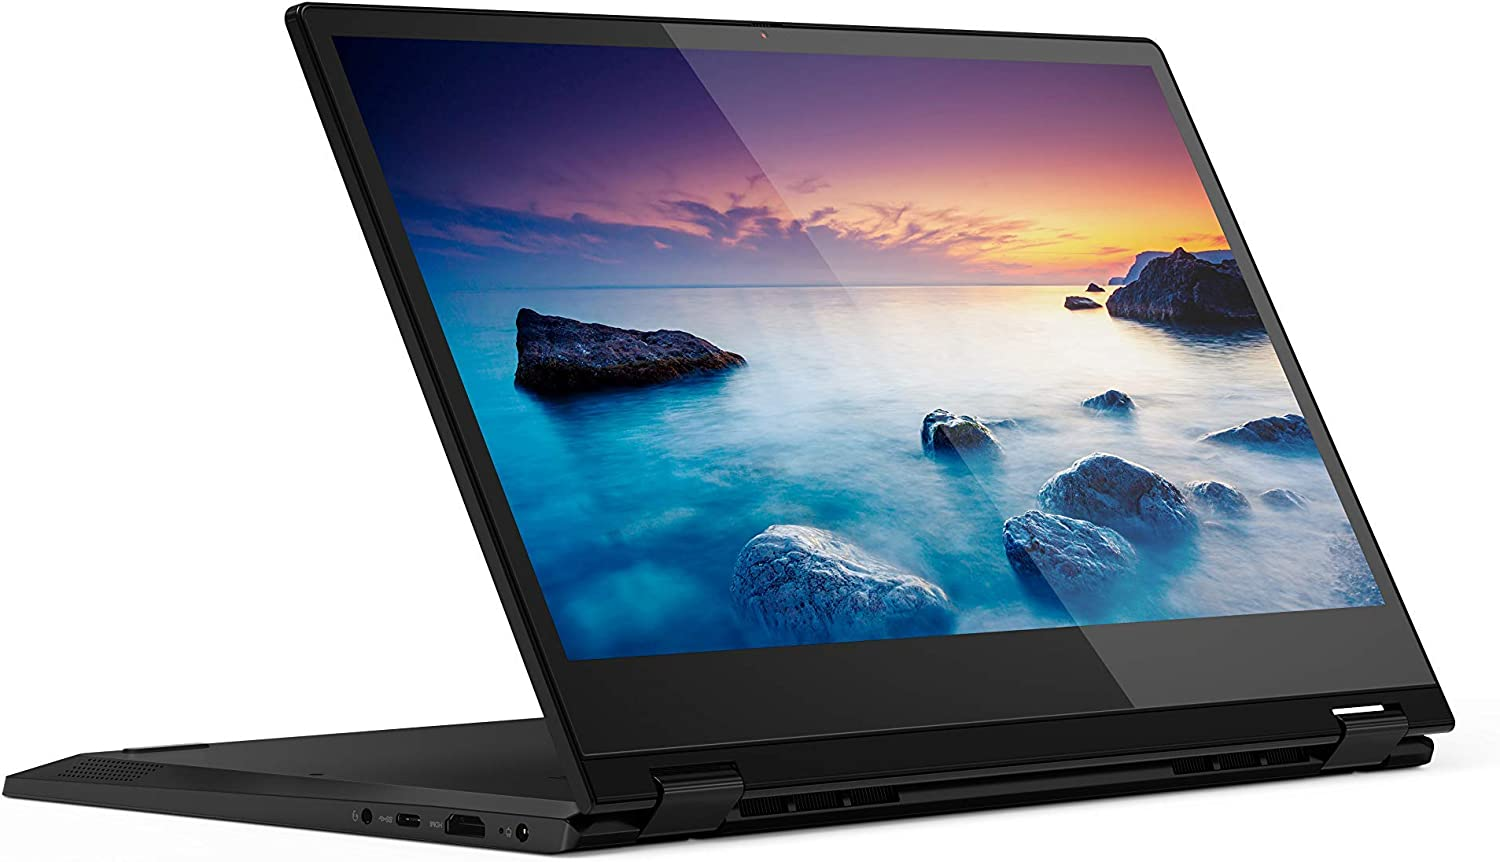 "Lenovo Flex 14 Convertible Laptop, 14"" FHD (1920 X 1080) Touch Display, Intel Core I5-8265U Processor, 8GB DDR4 RAM, 128GB SSD, Intel UHD Graphics 615, Windows 10, 81SQ0009US, Onyx Black (Renewed)"